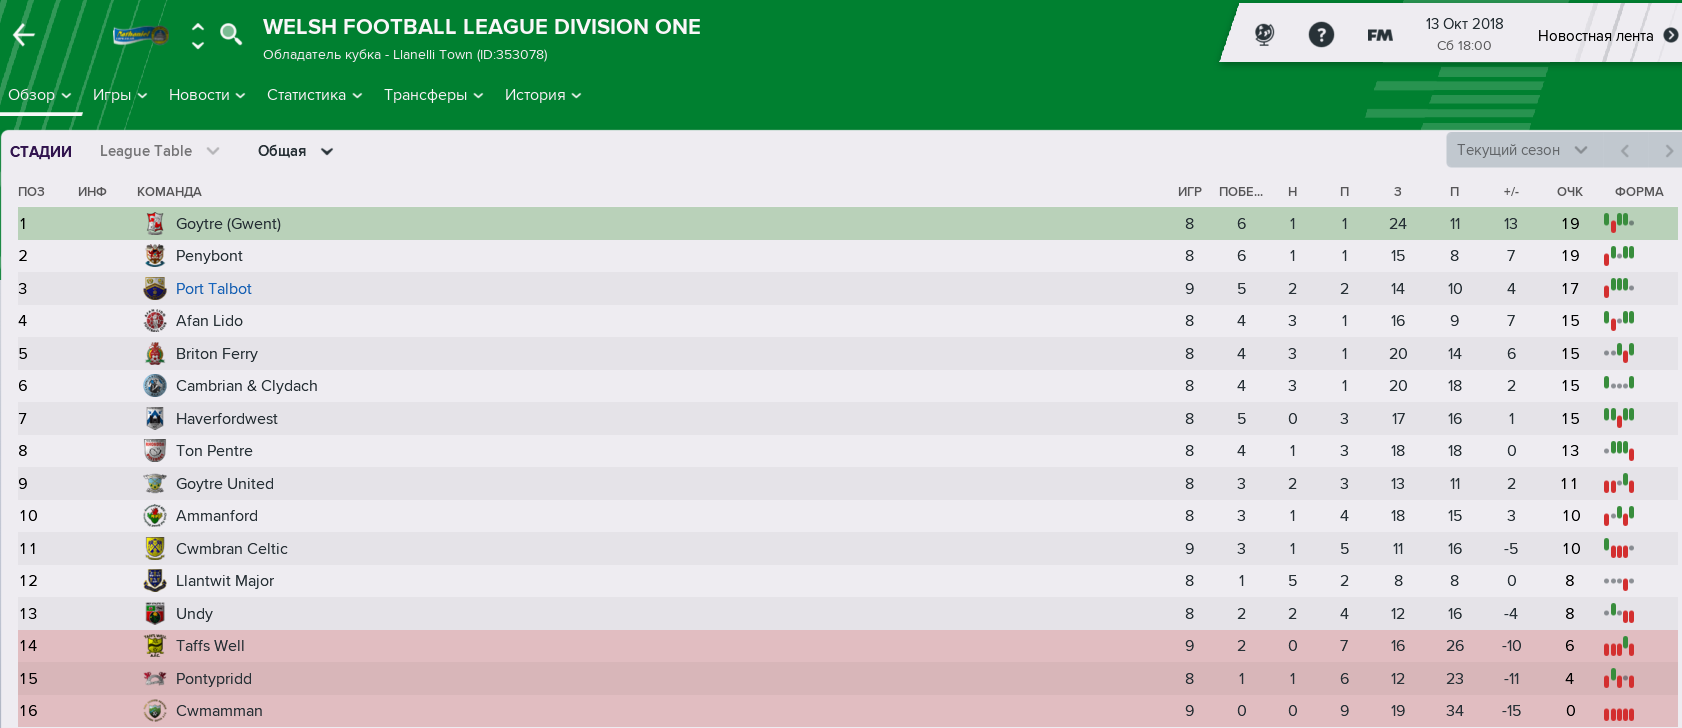 Welsh-Football-League-Division-One.png